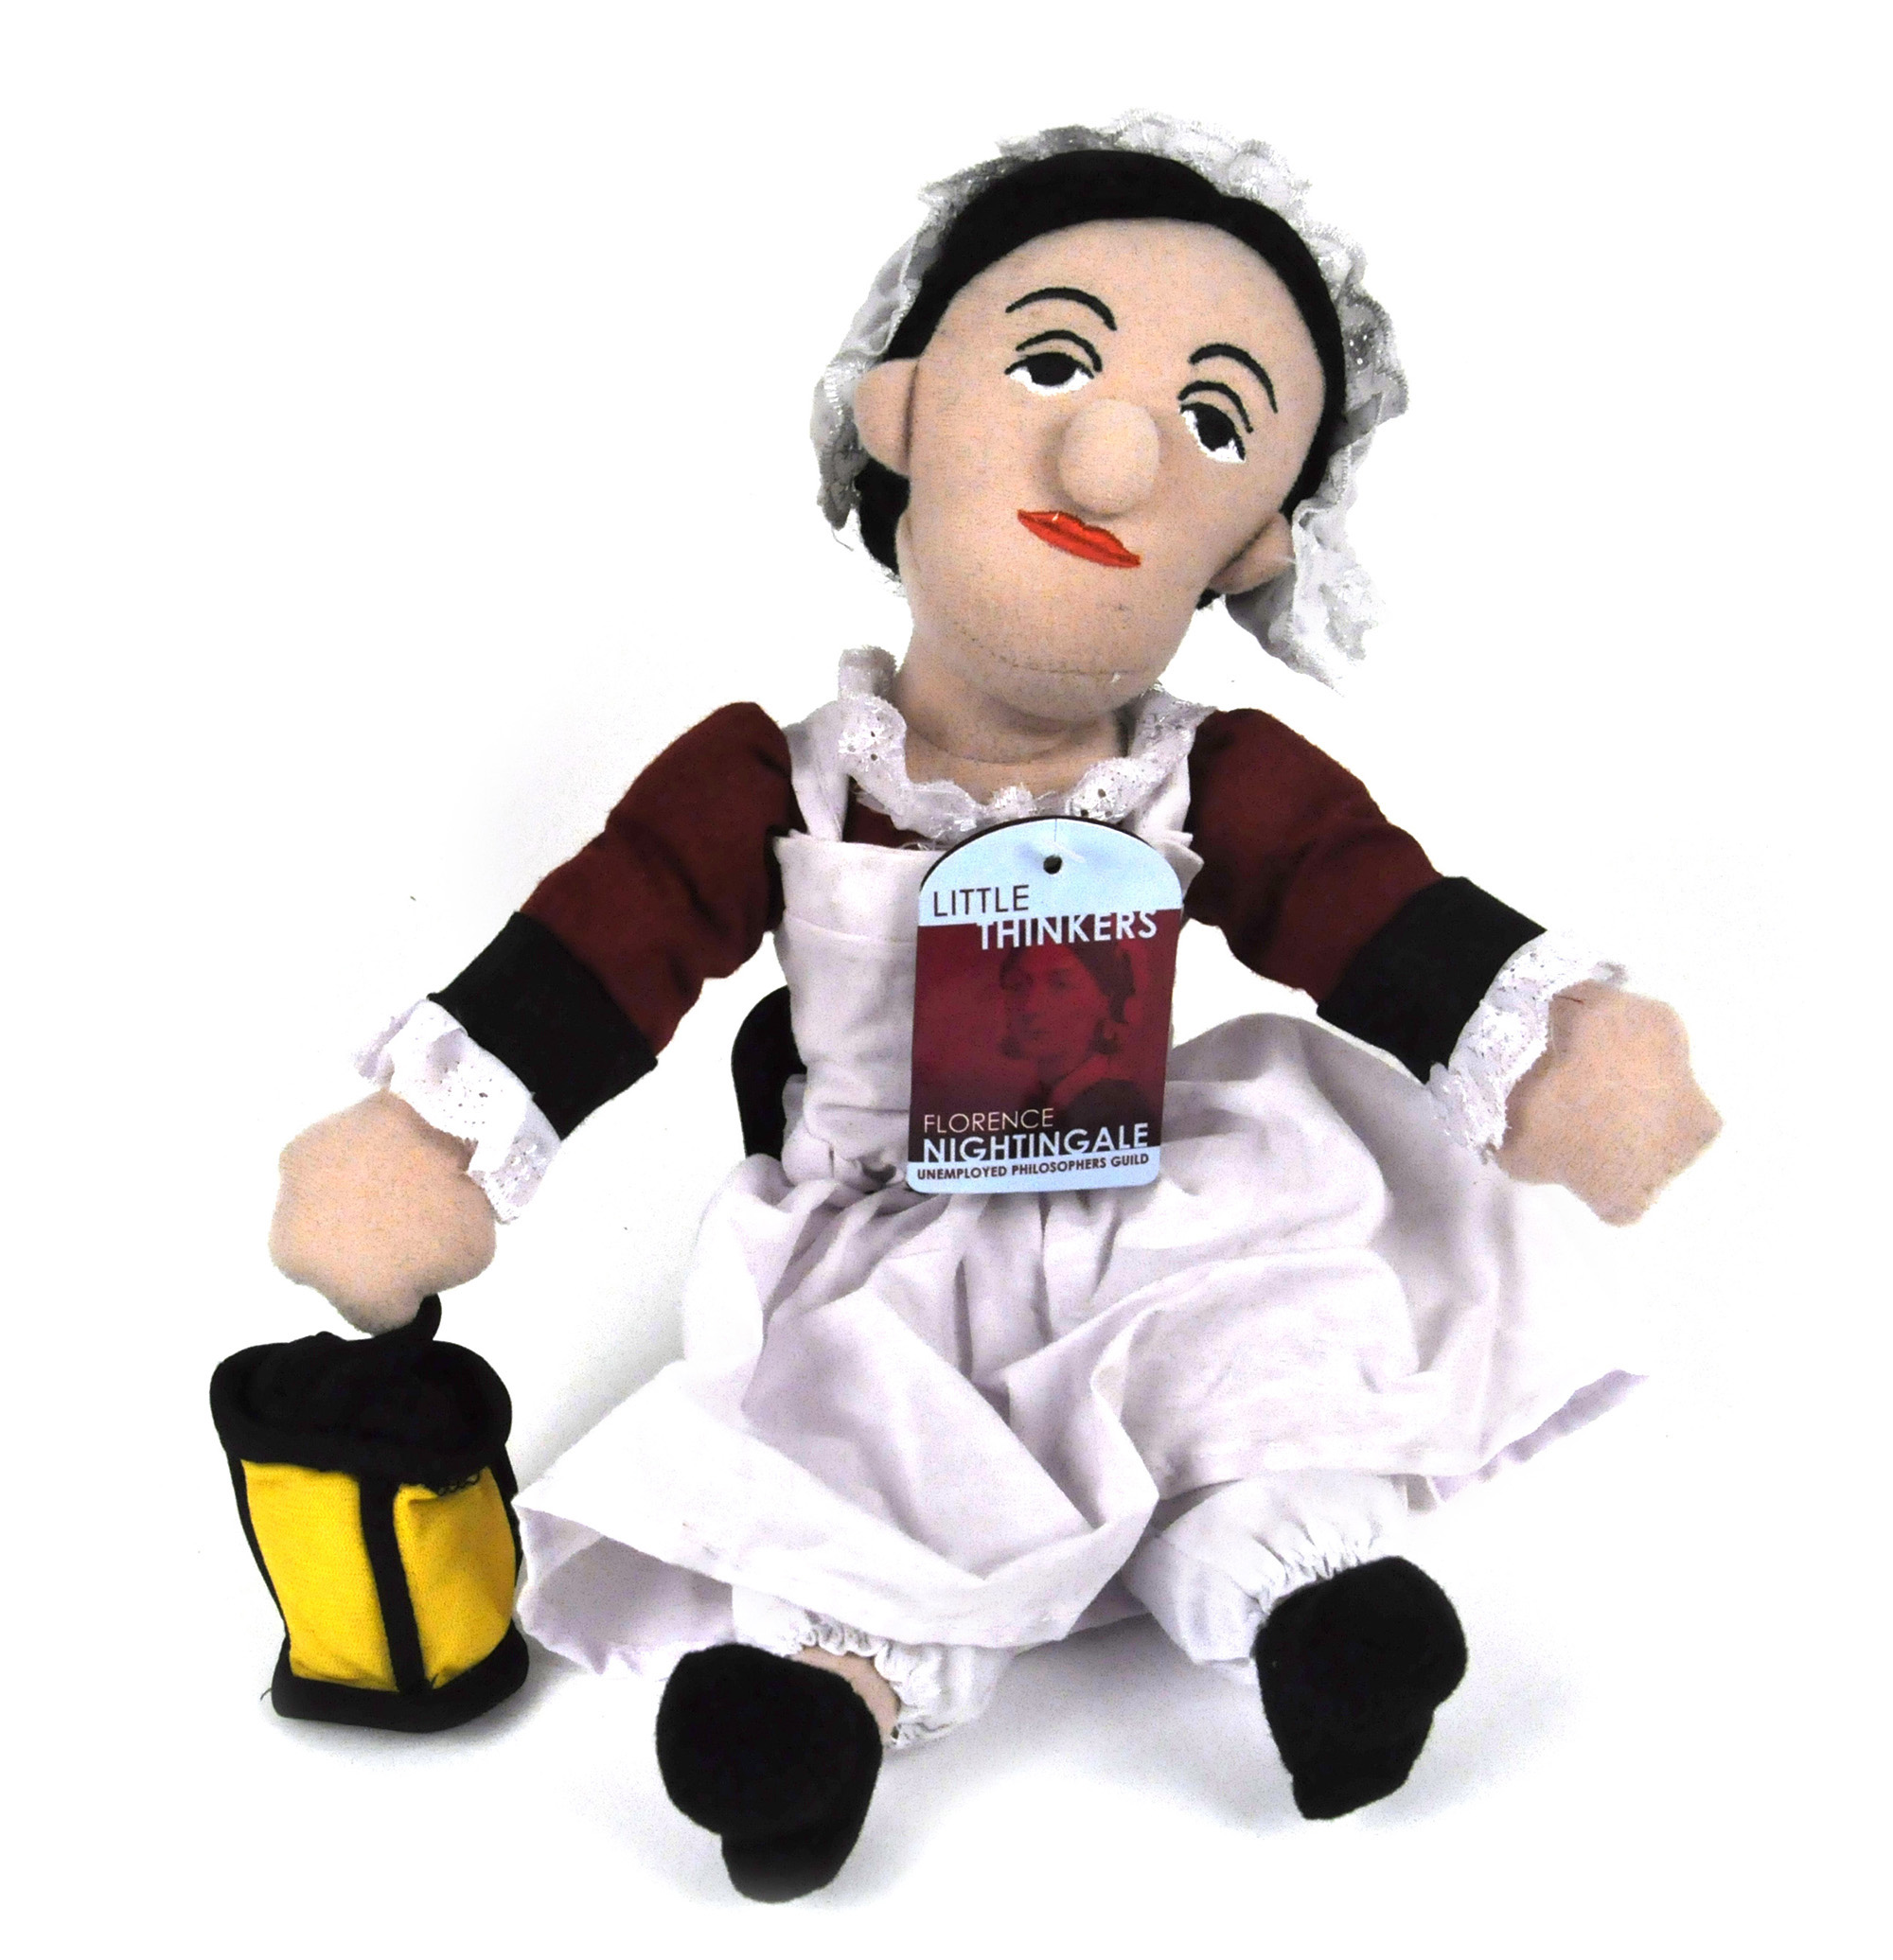 Details about Florence Nightingale - Little Thinkers Doll